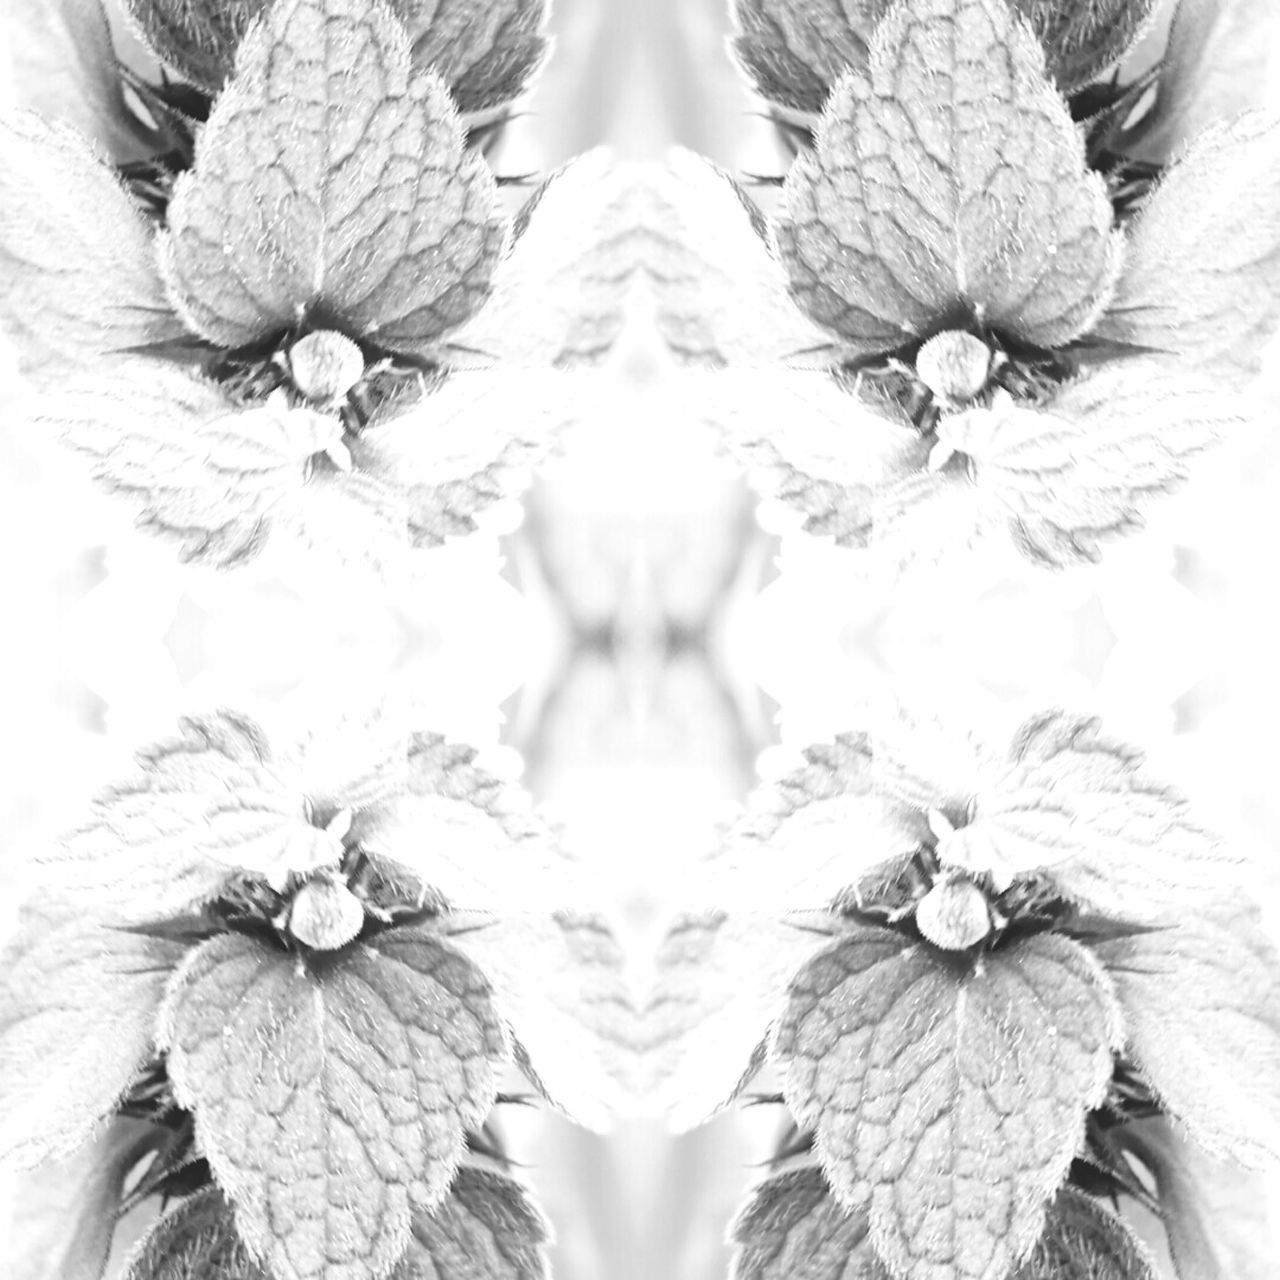 close-up, flower, no people, backgrounds, abstract, full frame, indoors, symmetry, flower head, day